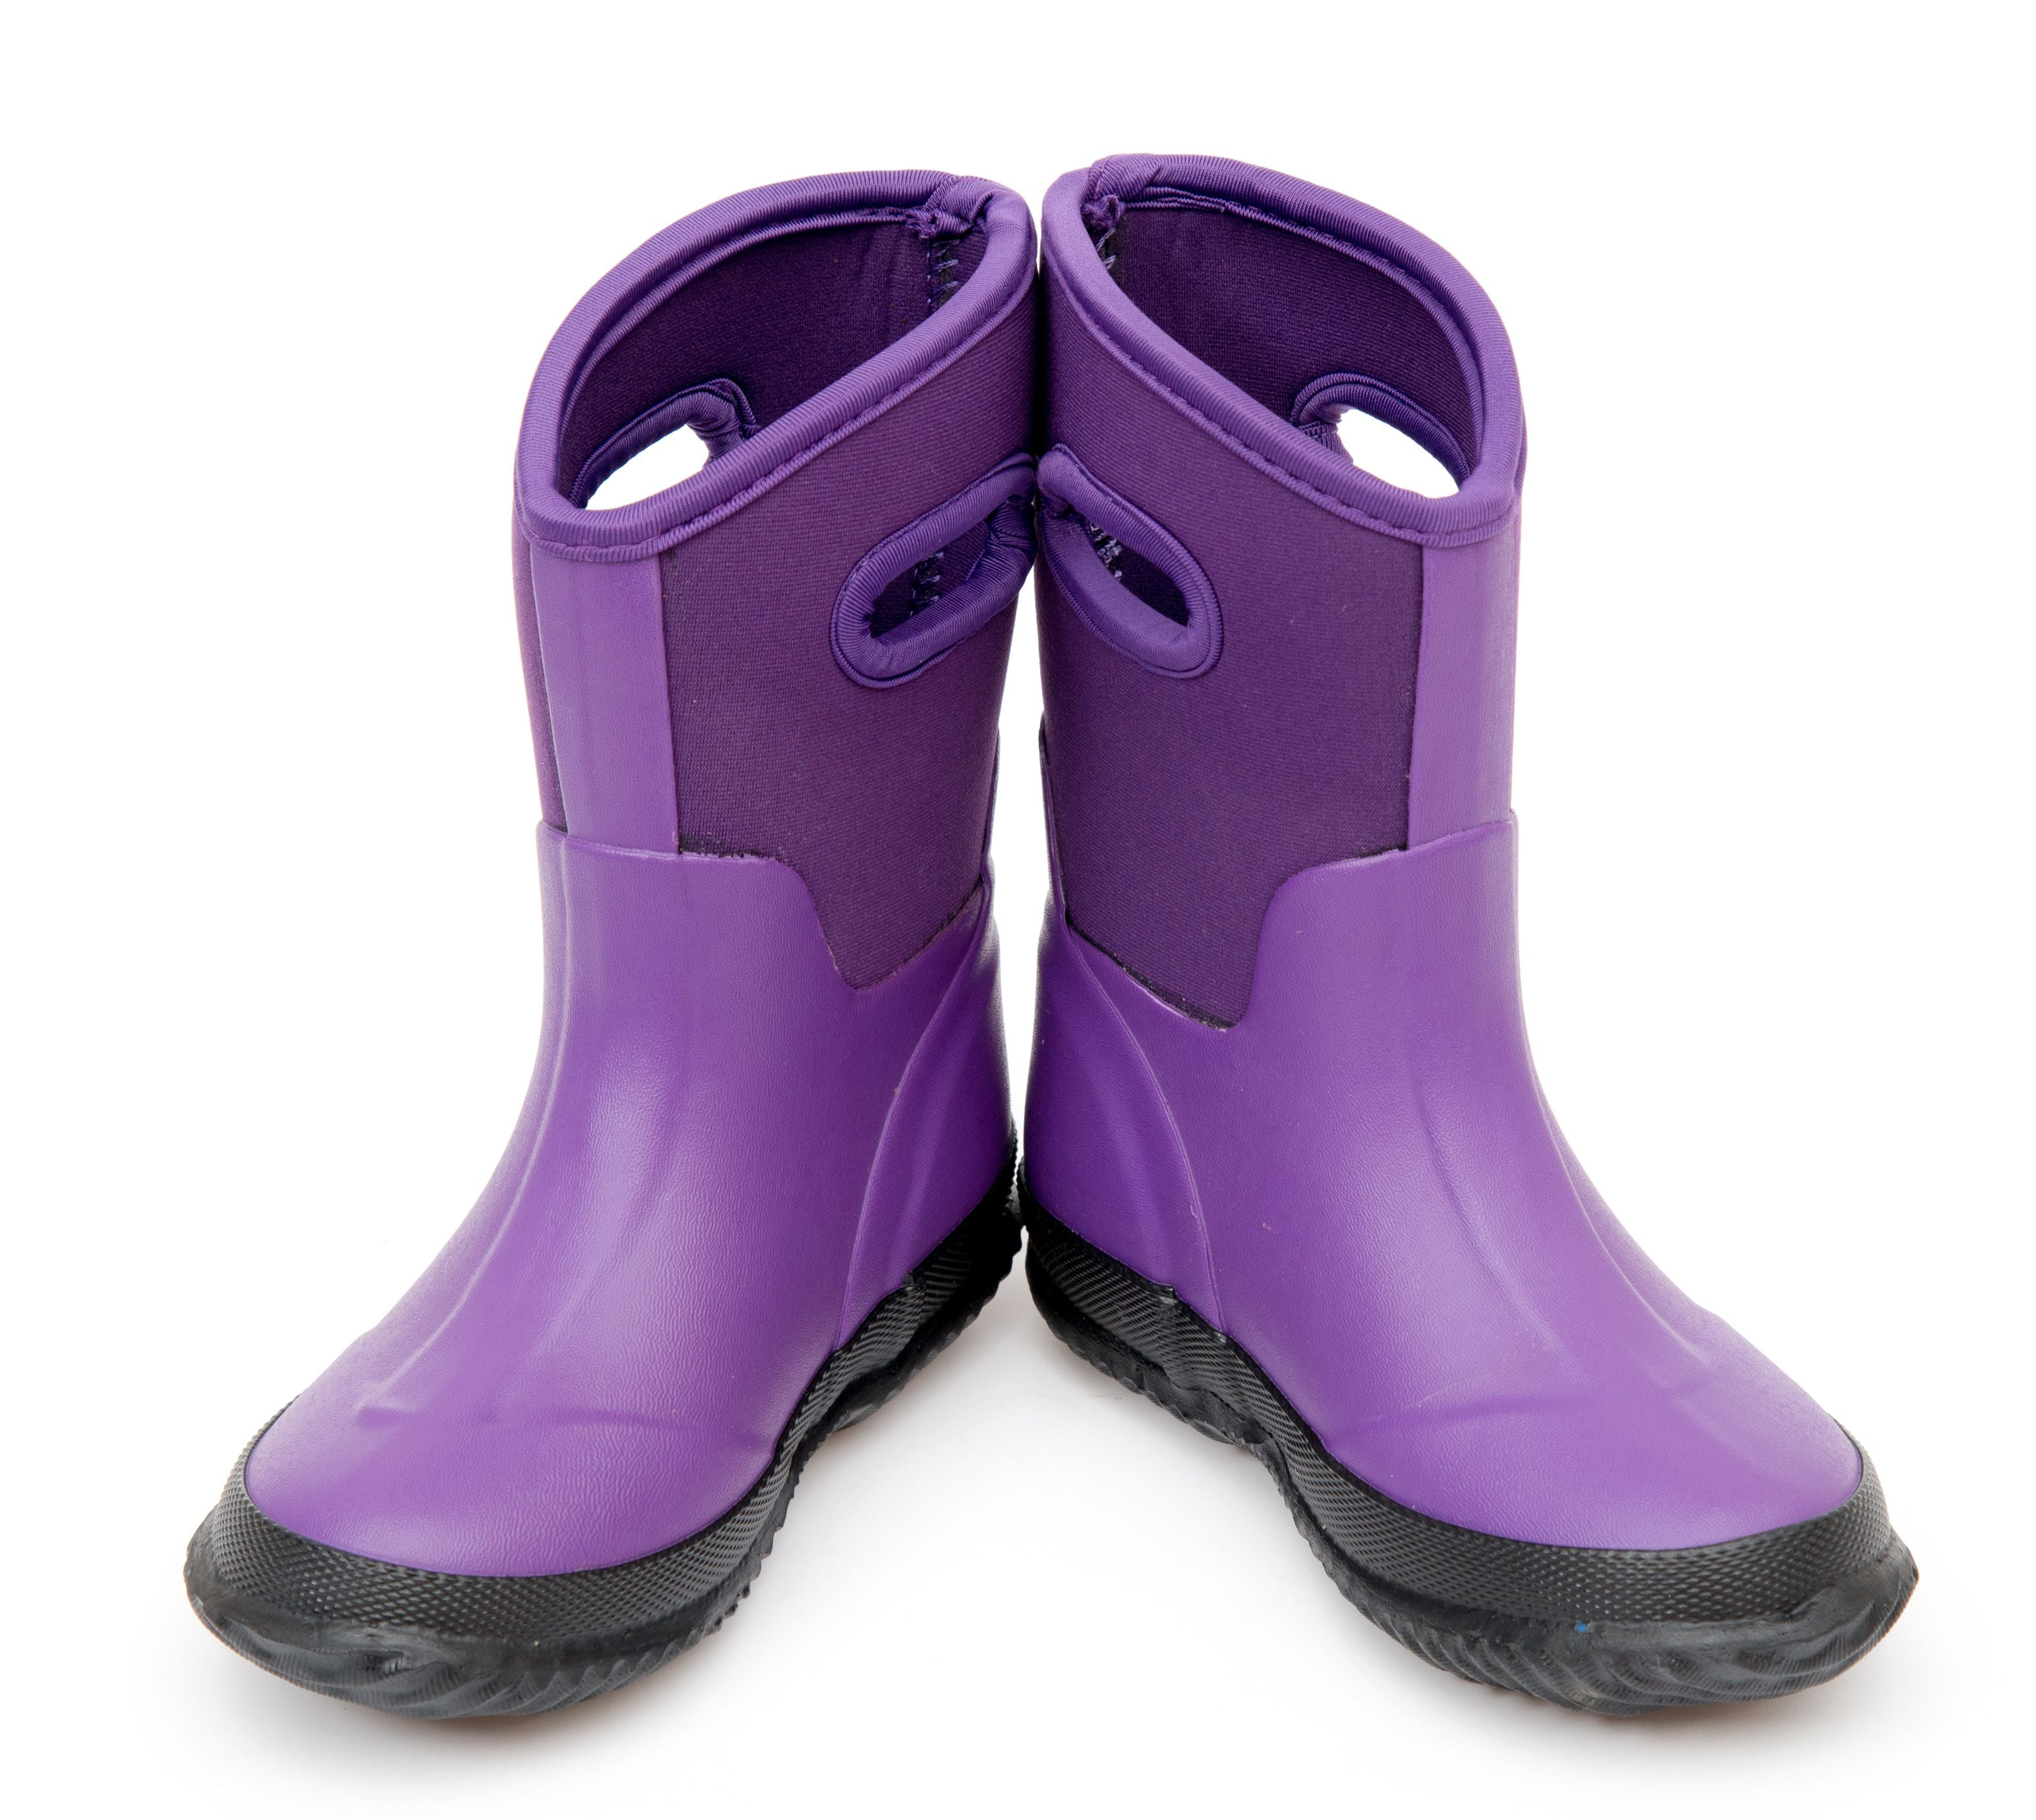 Outee Kids Girls Neoprene Snow Boots Mud Boots - Purple